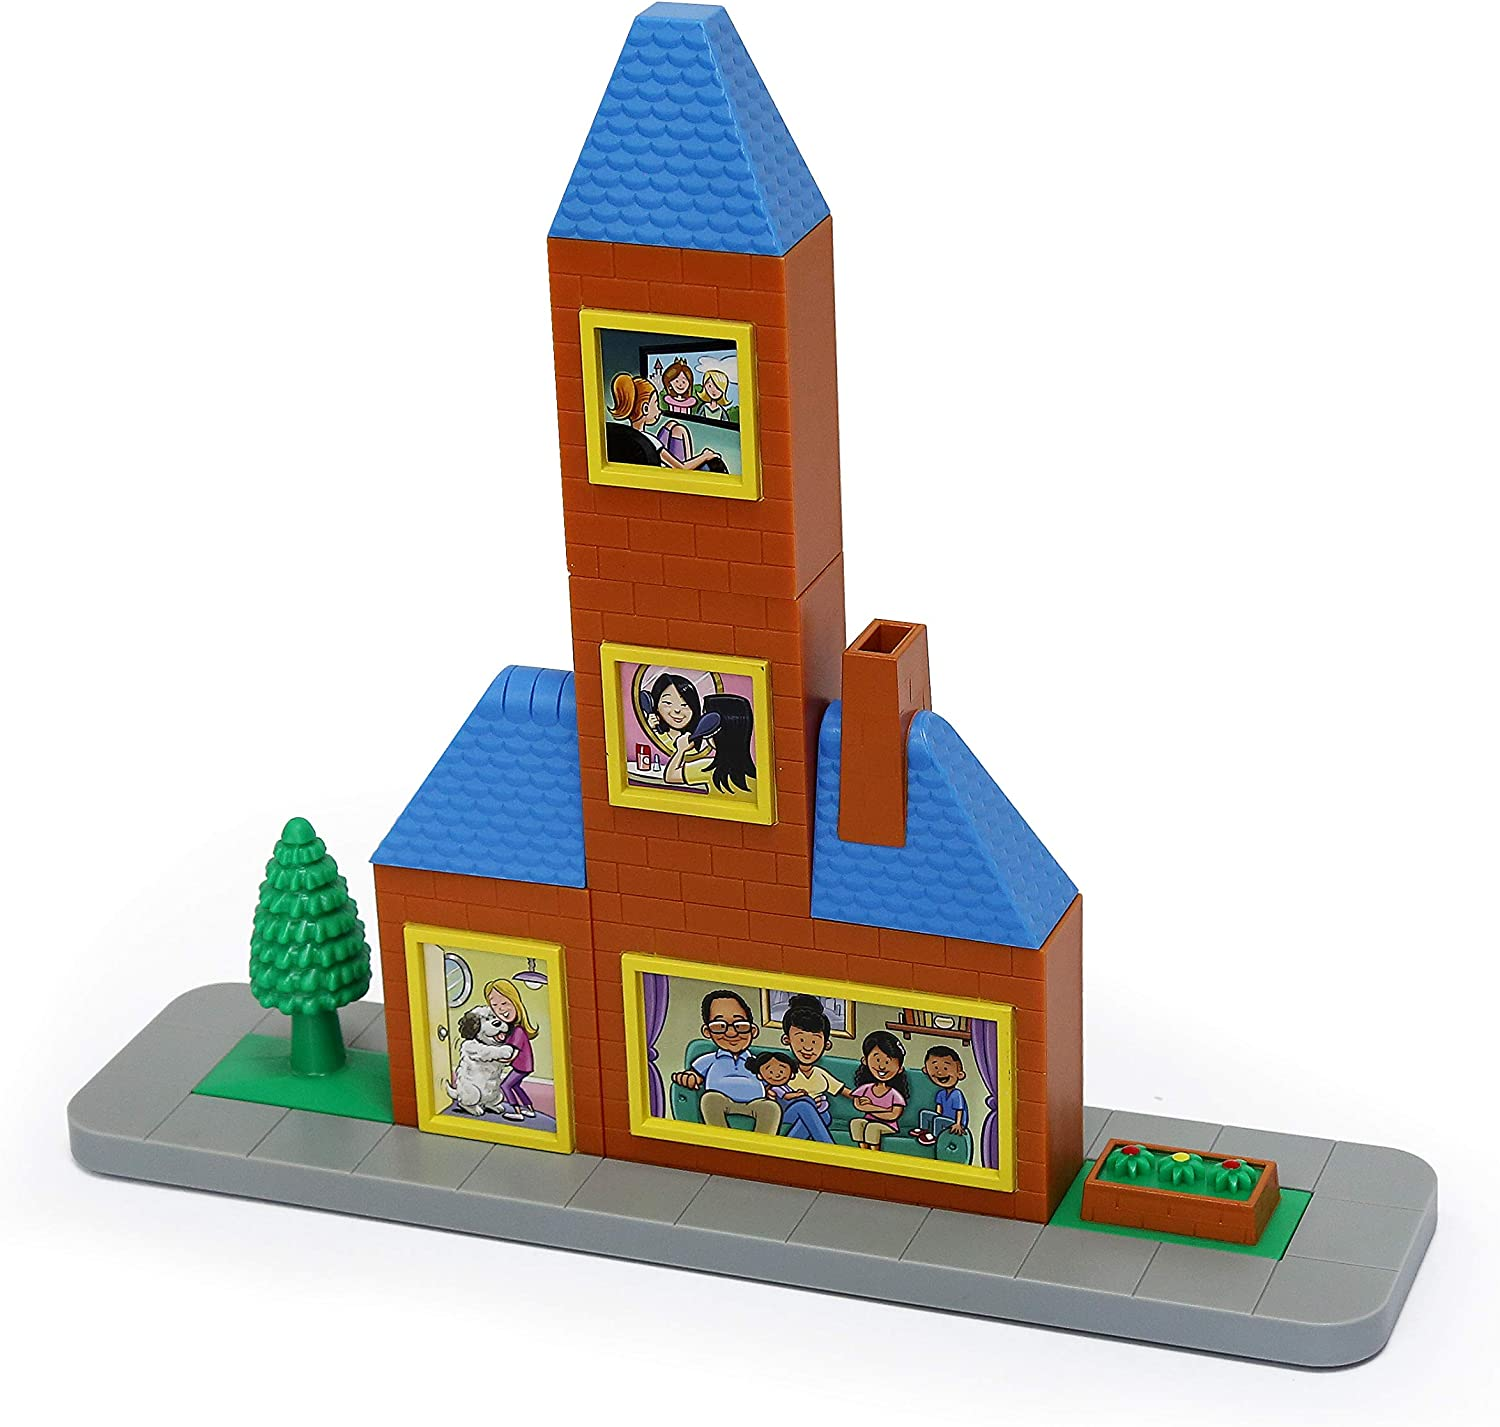 Magnetic Building Blocks Playset Popular Playthings Construction Toy MAGVILLE